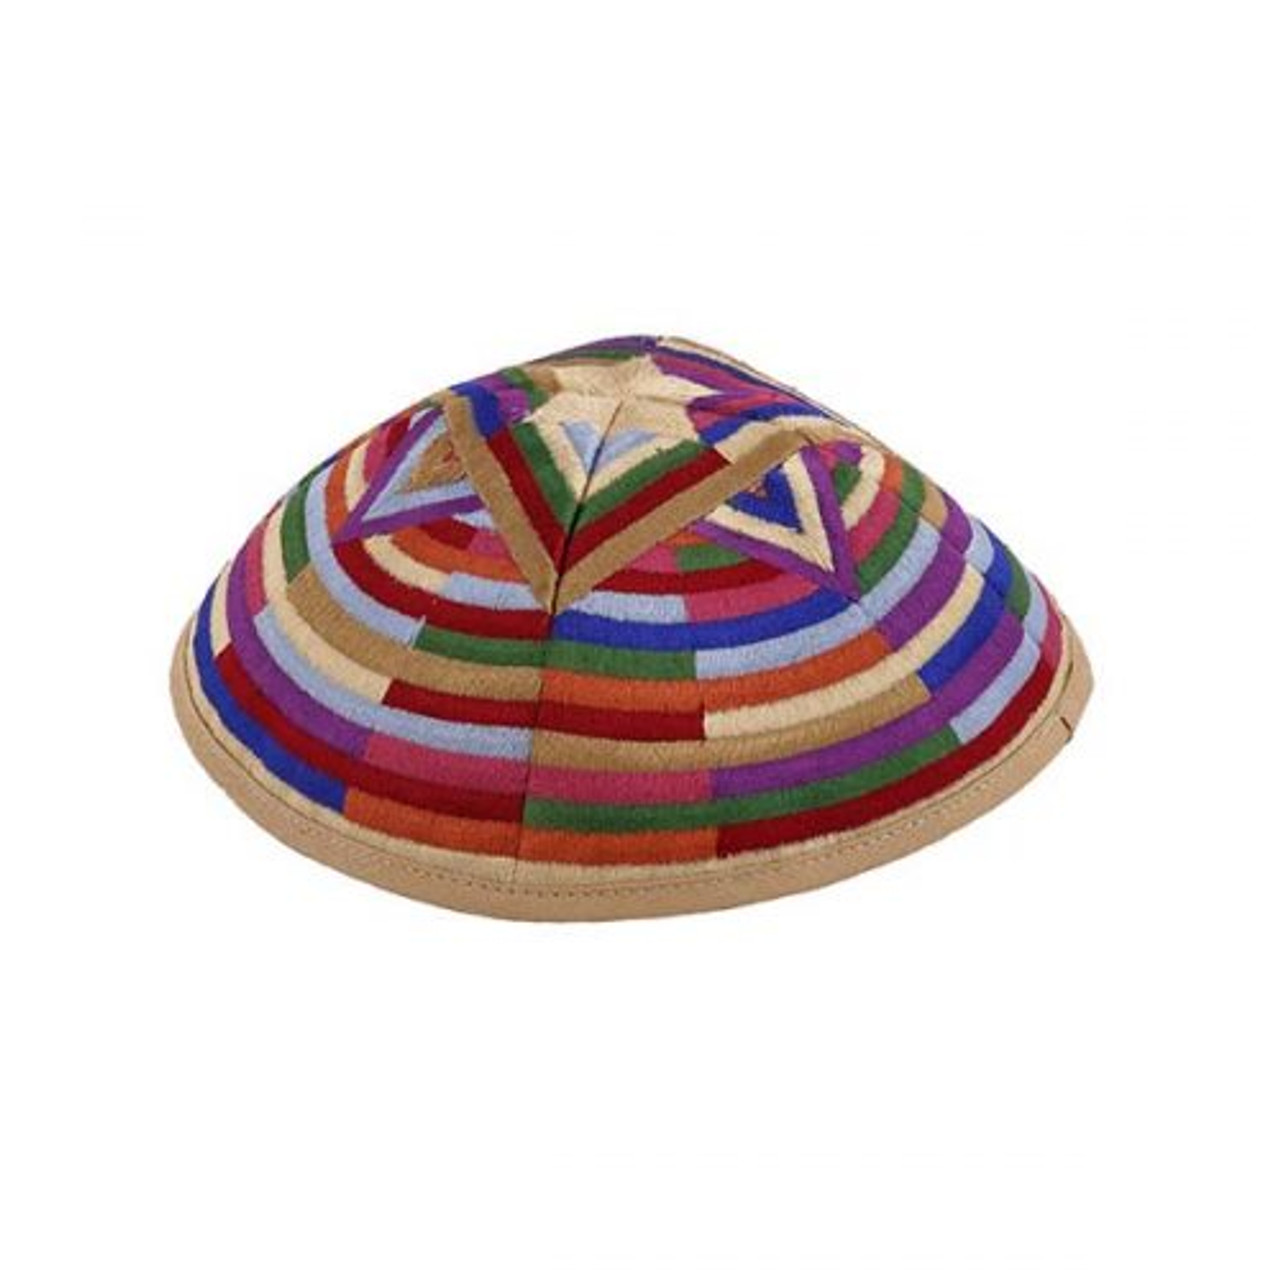 Contemporary Magen David Medley Embroidered Kippah